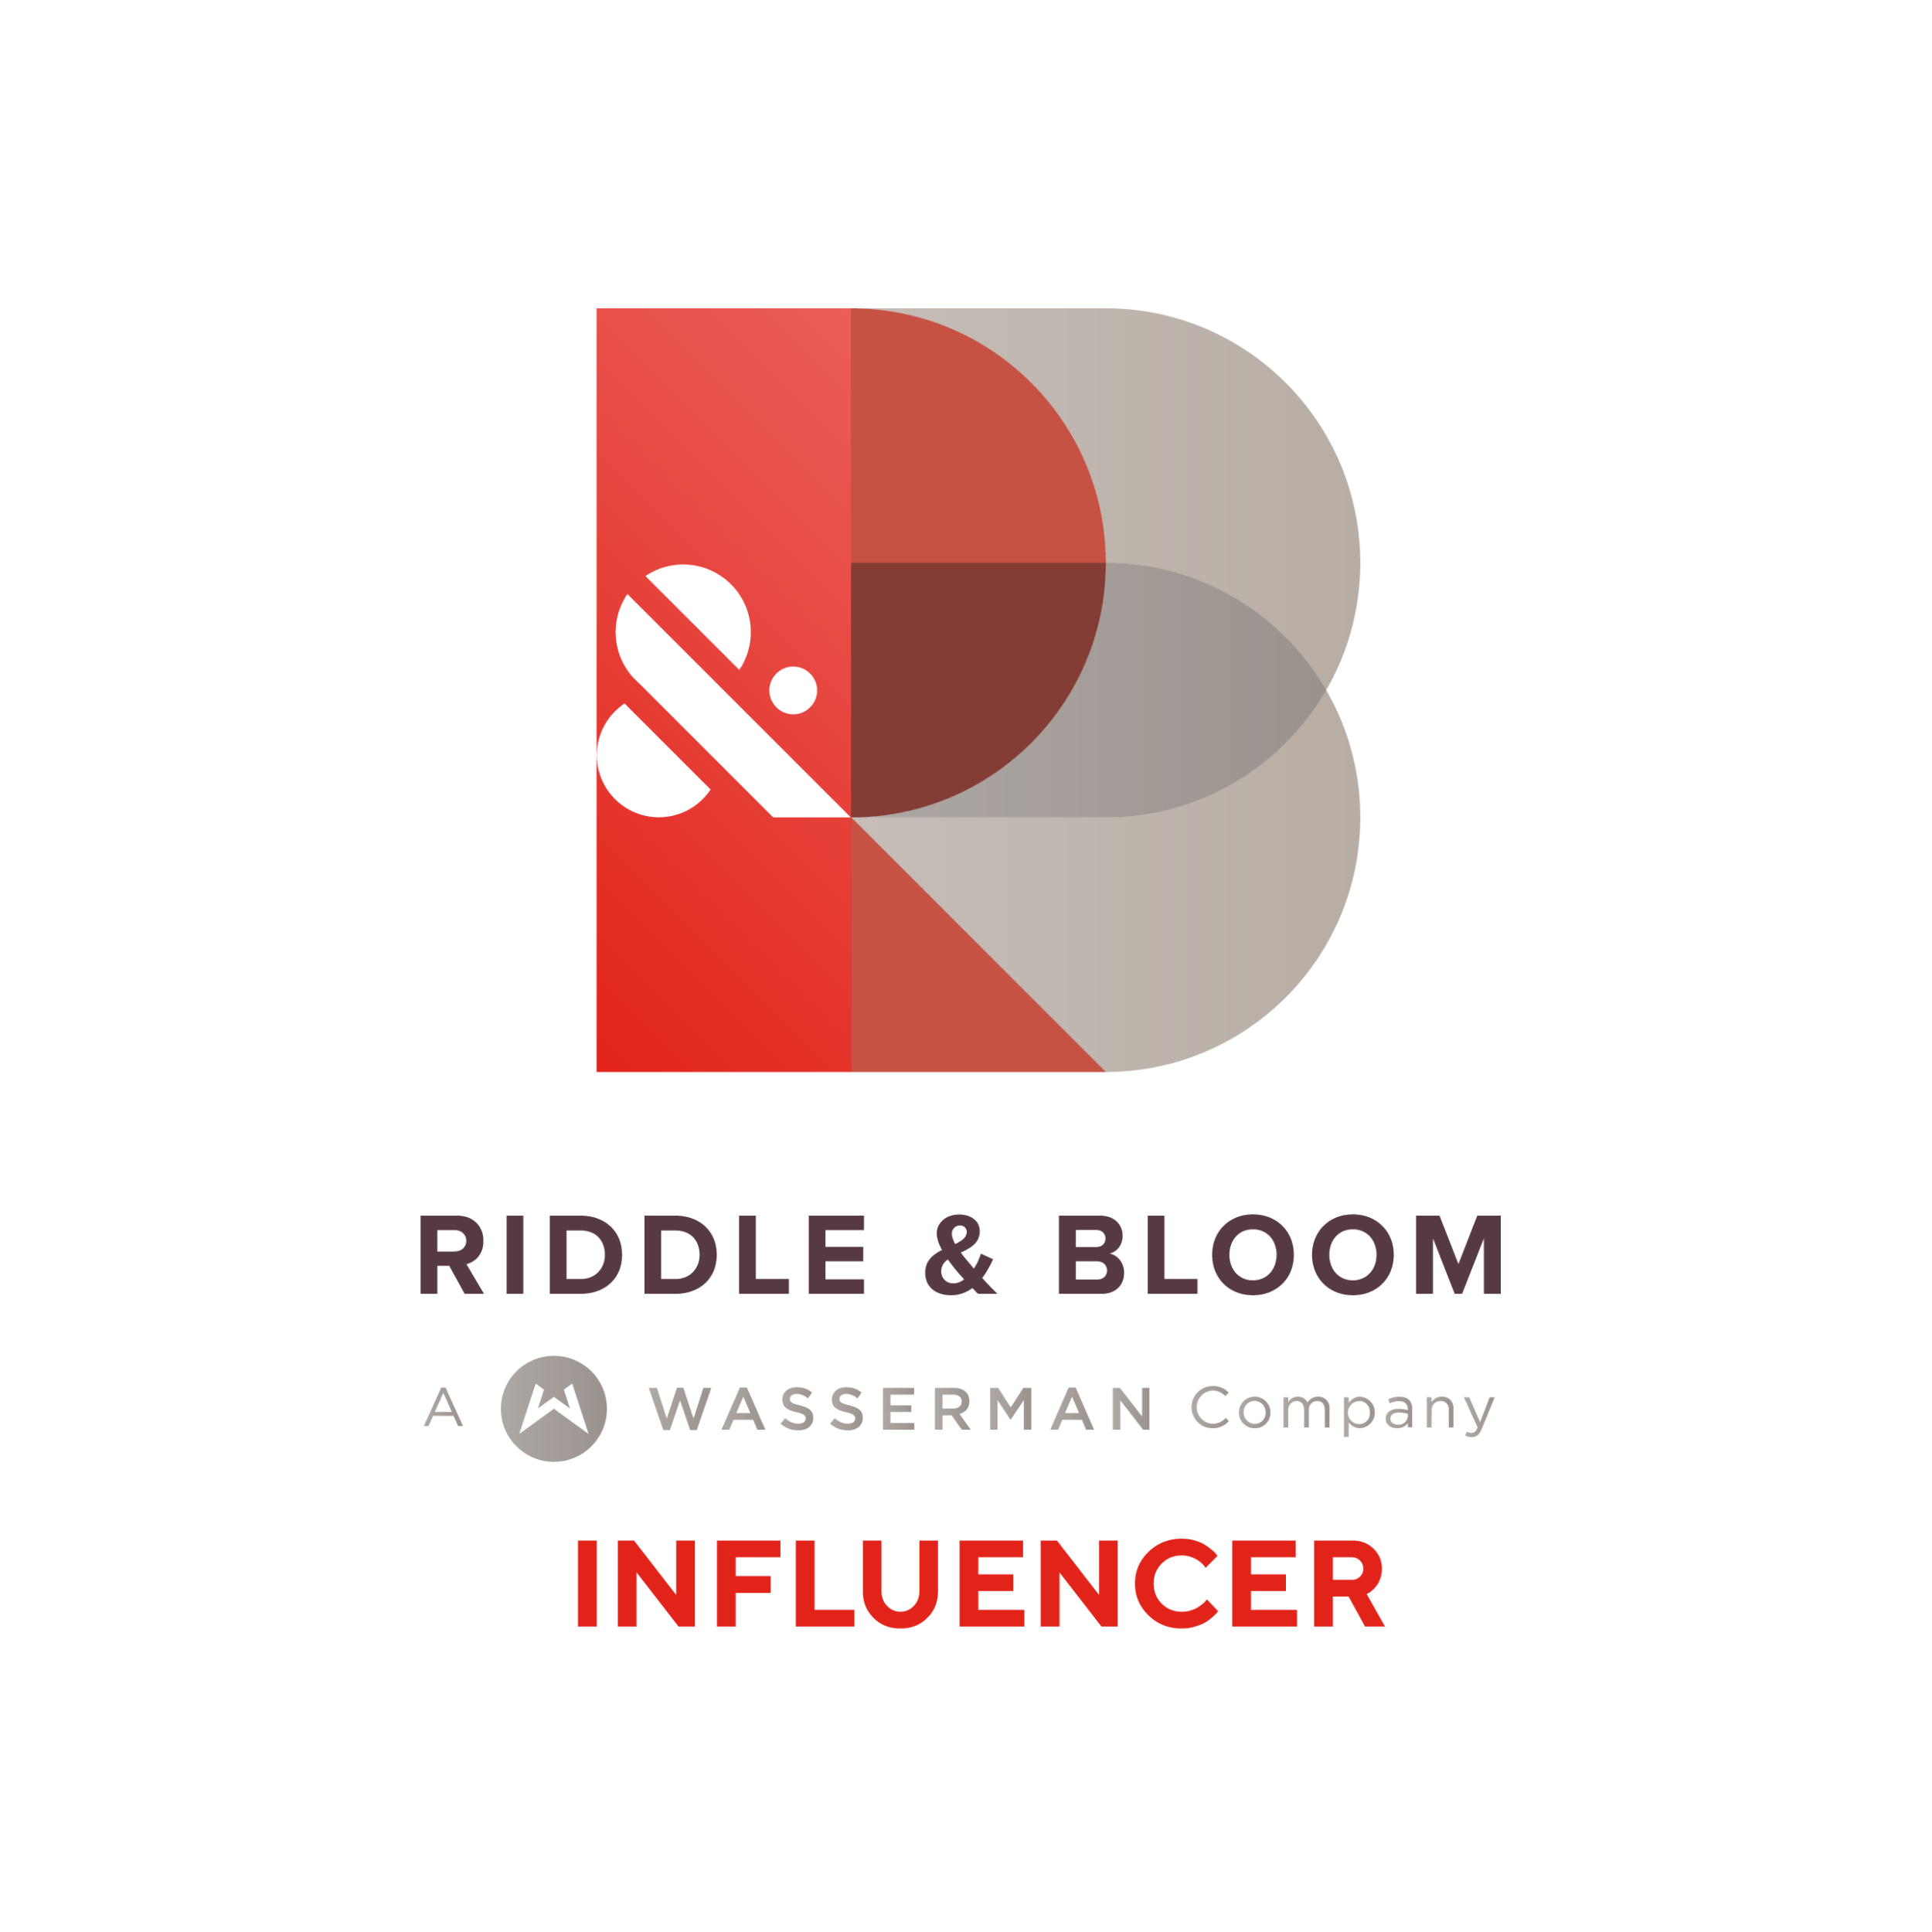 riddle and bloom a wasserman company infuencer application